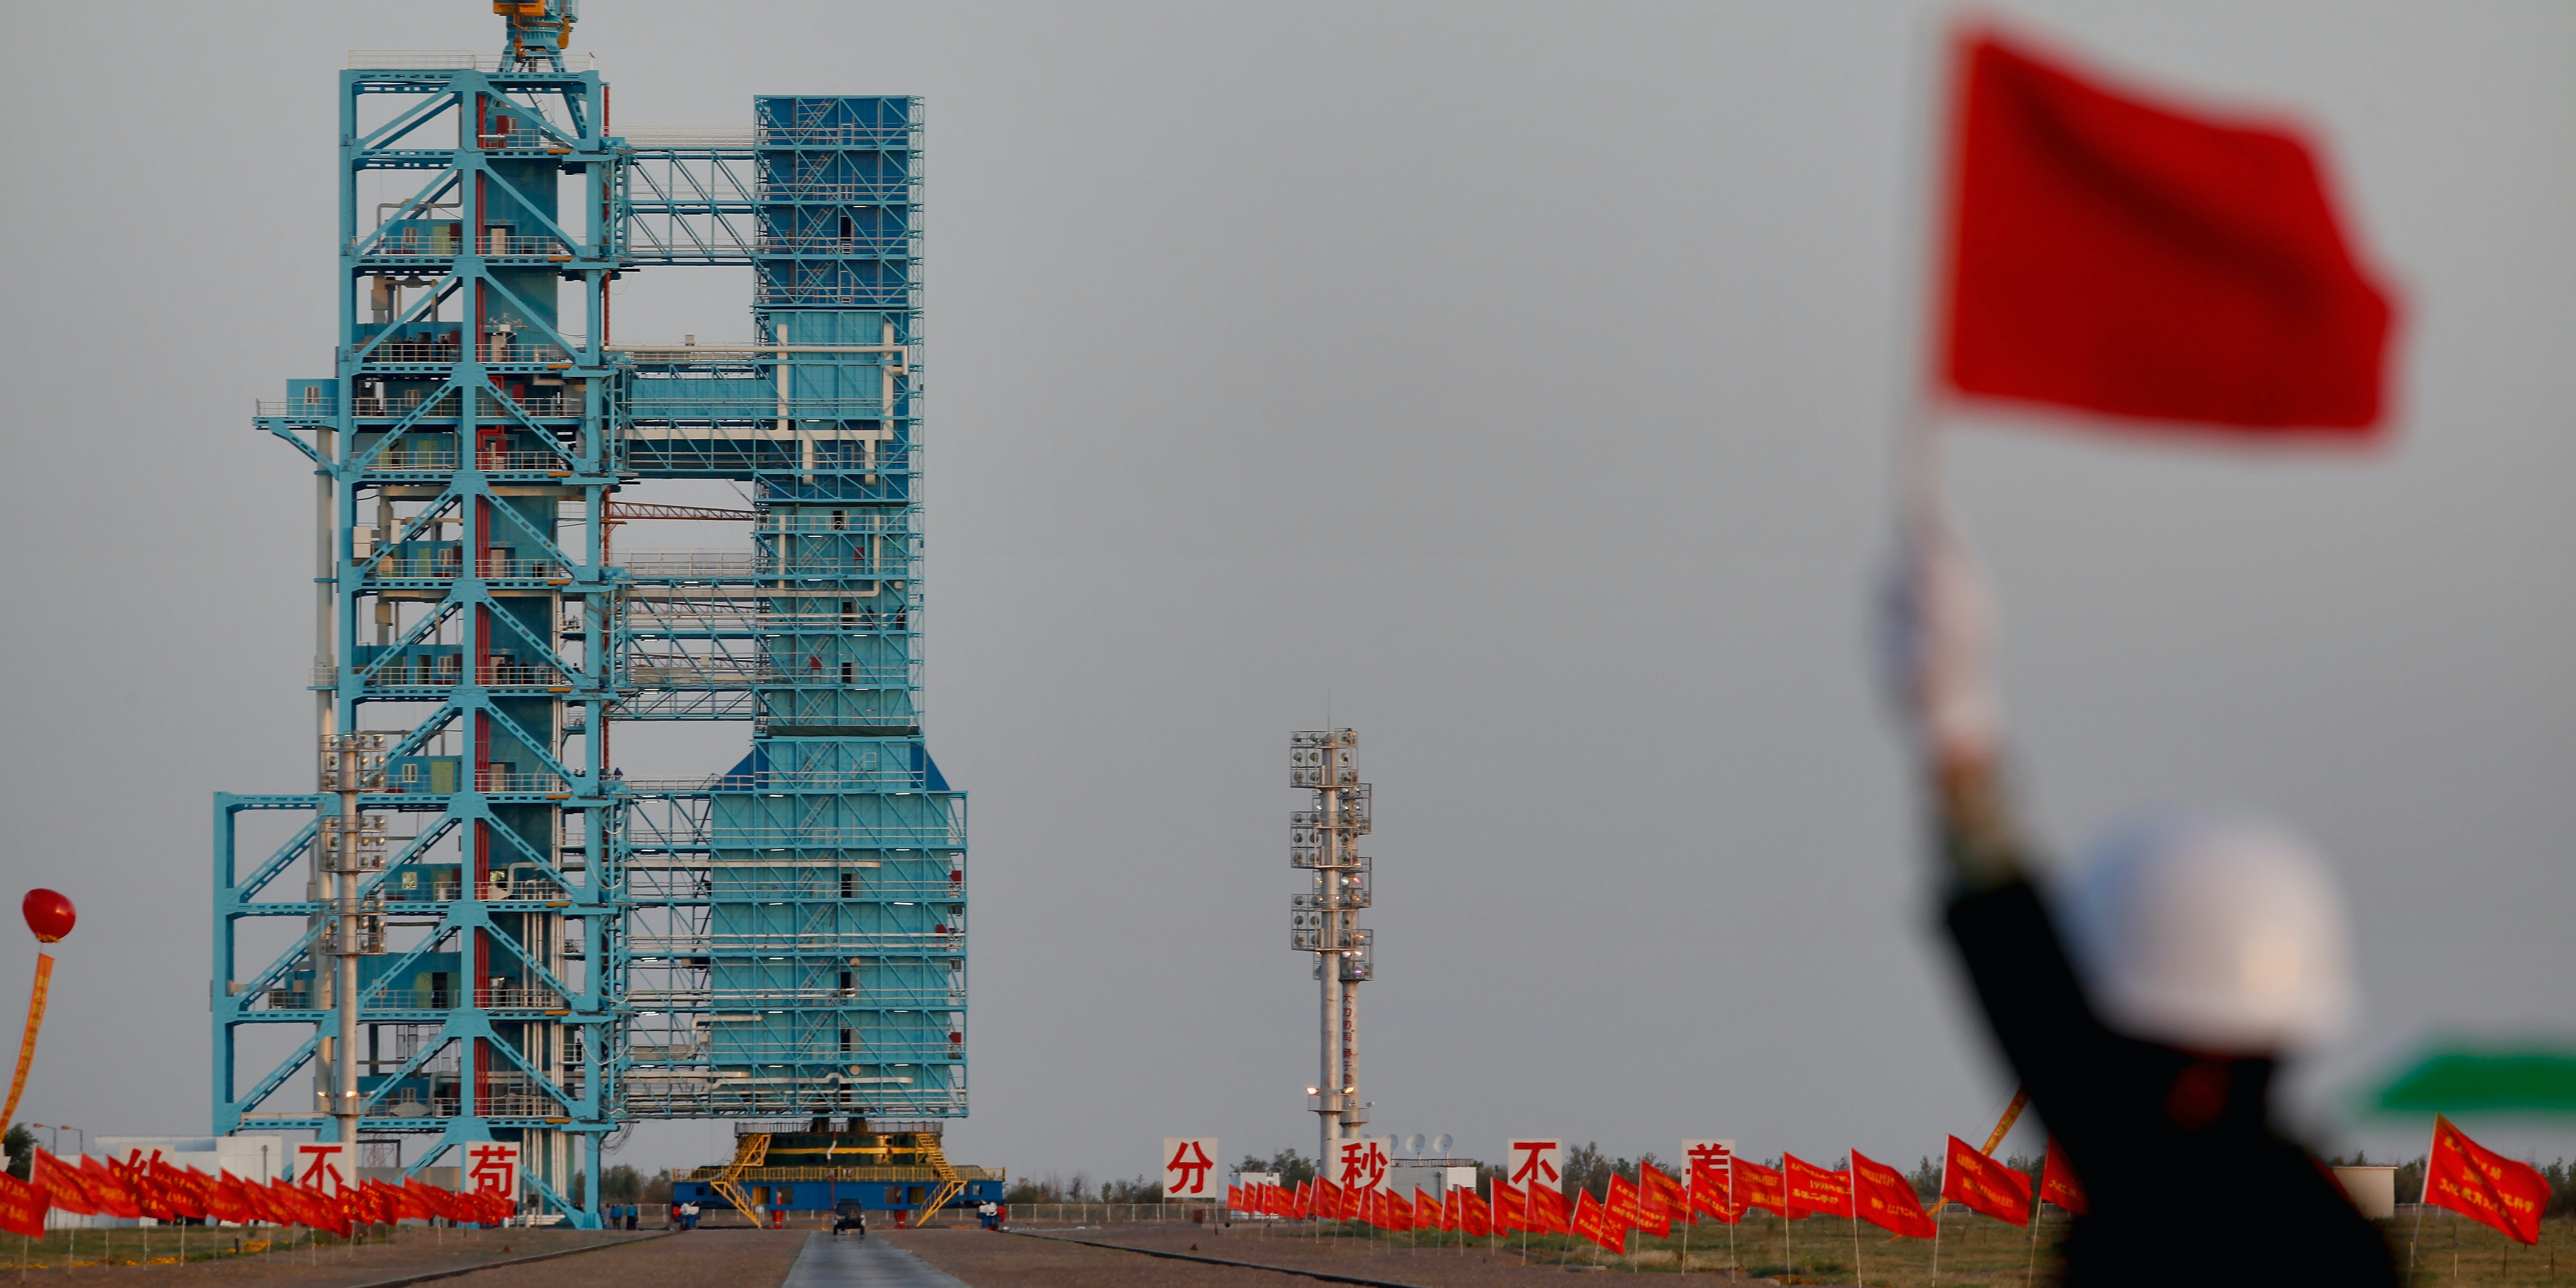 JIUQUAN, CHINA - SEPTEMBER 29:  A Long March 2F rocket carrying the country's first space laboratory module Tiangong-1 prepares to lift off from the Jiuquan Satellite Launch Center on September 29, 2011 in Jiuquan, Gansu province of China. The unmanned Tiangong-1 will stay in orbit for two years and dock with China's Shenzhou-8, -9 and -10 spacecraft with the eventual goal of establishing a manned Chinese space station around 2020.  (Photo by Lintao Zhang/Getty Images)